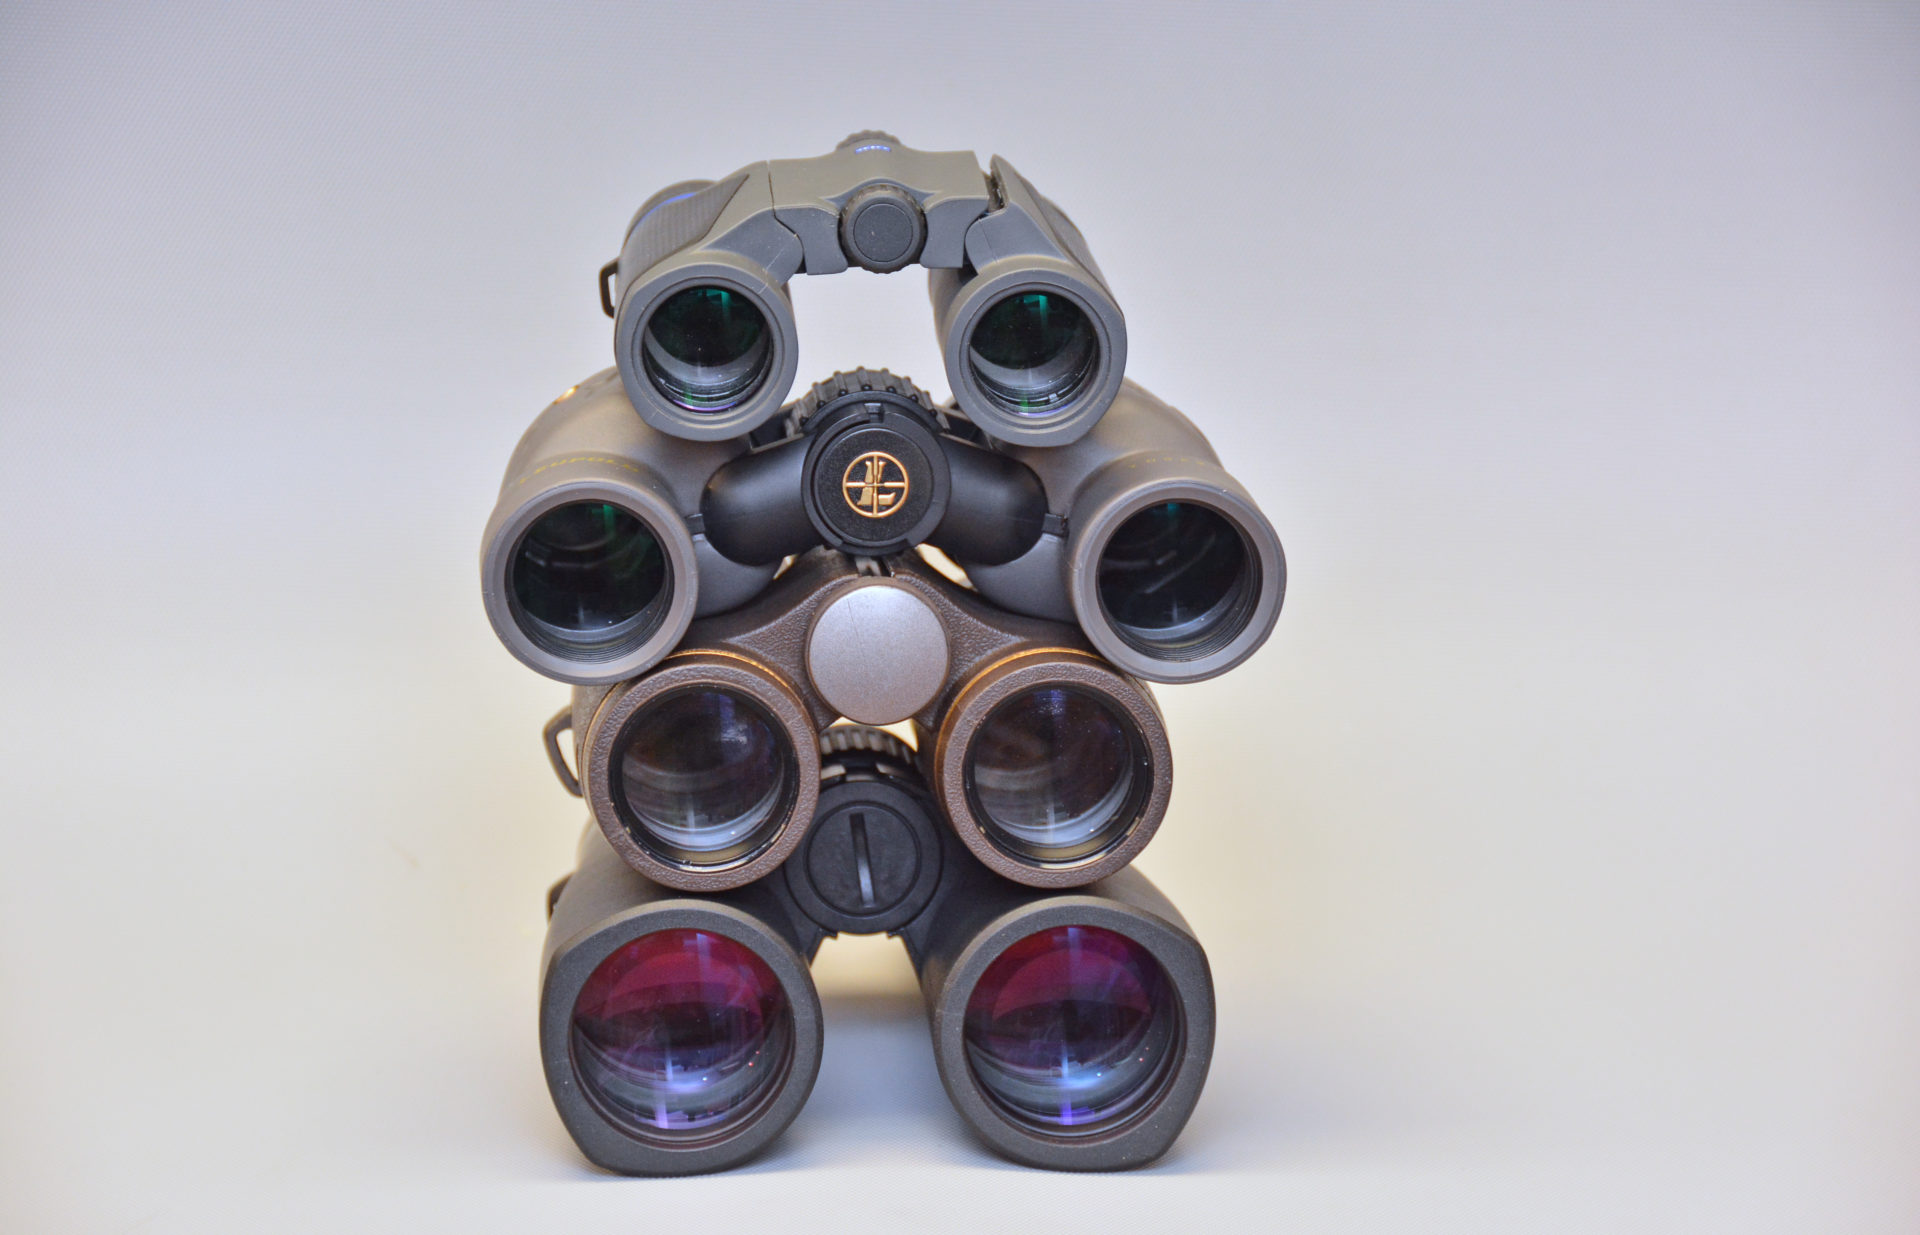 Objective lens size is a large determinate of how they perform in dim light. From top to bottom these optics have 25, 30, 32 and 42-millimetre objective lenses.